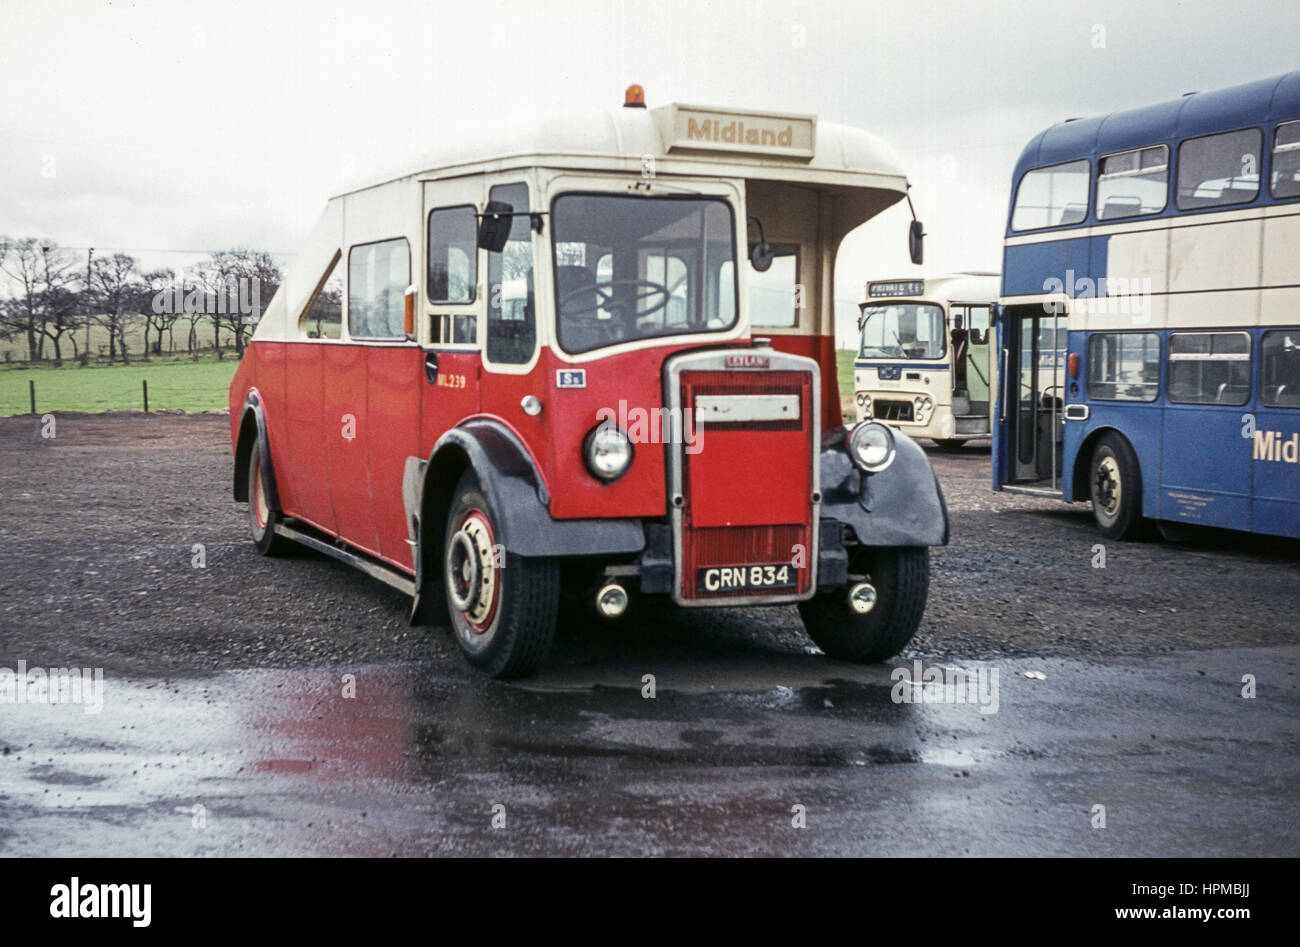 Scotland, UK - 1973: Vintage vehicle image. Midland tow wagon ...